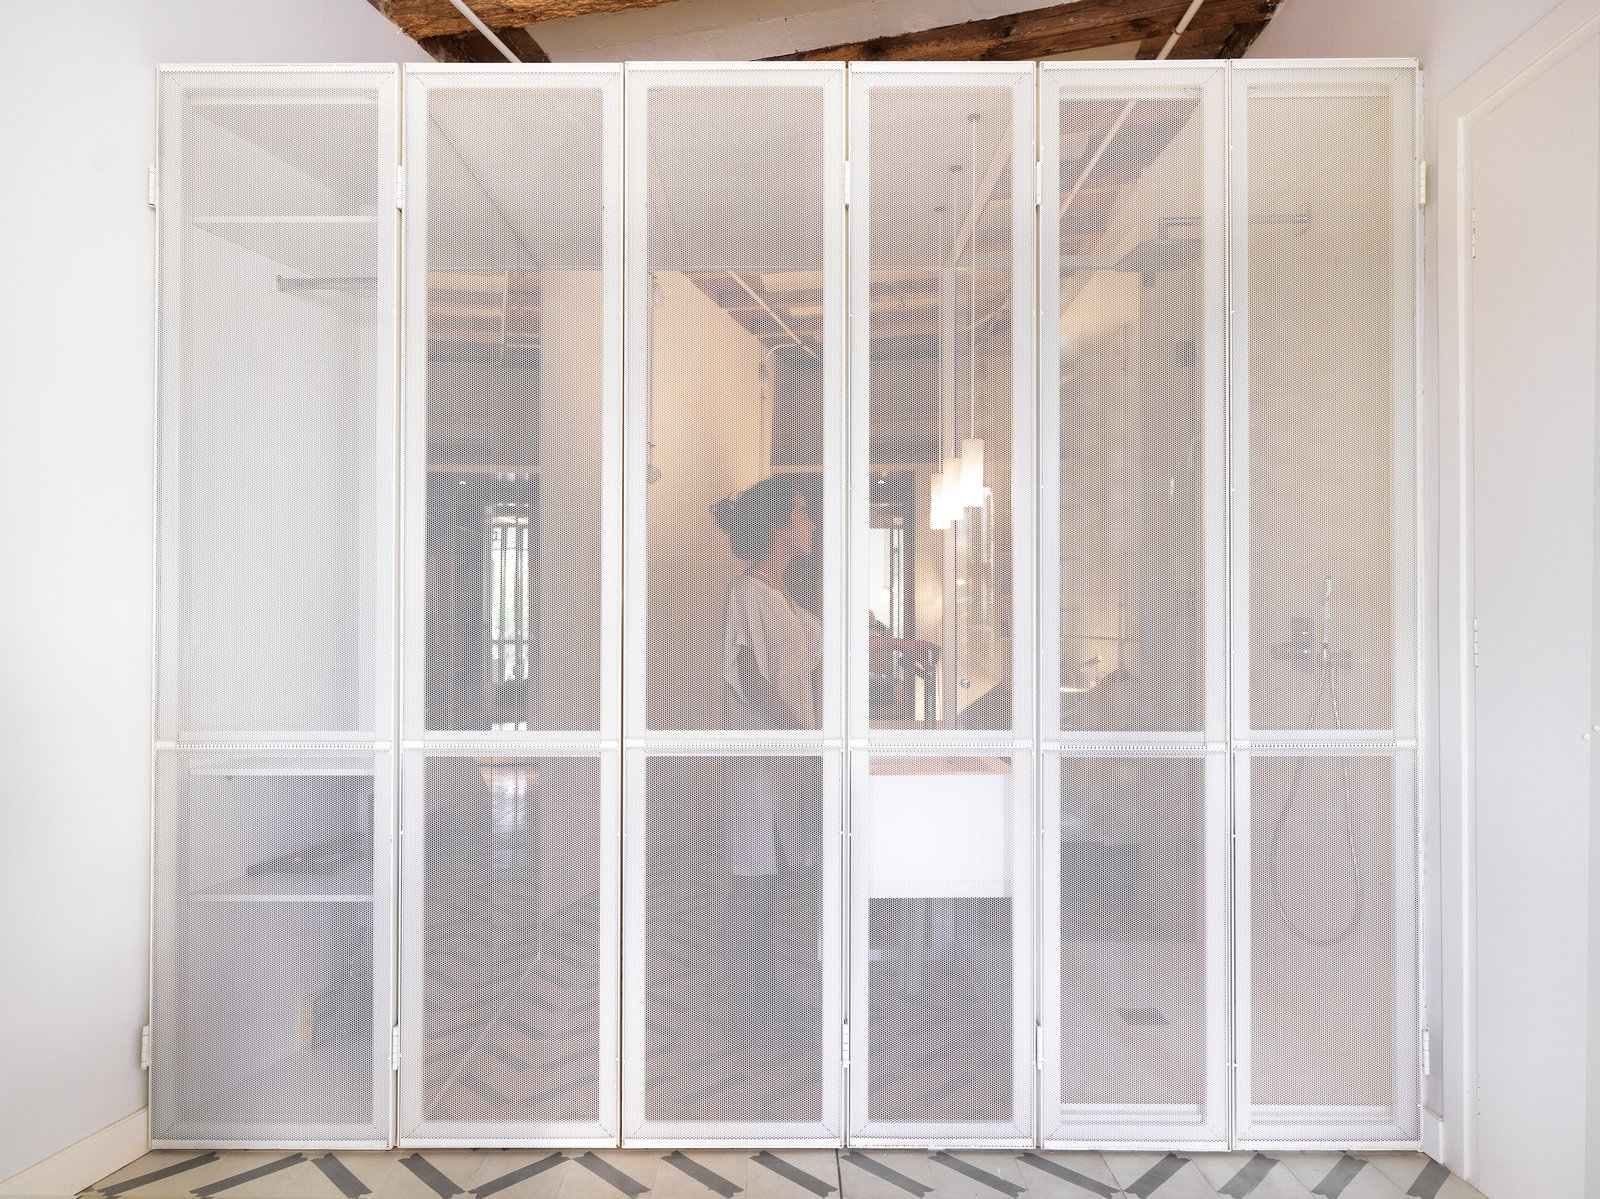 The Lightox, A perforated metal screen separates the living space from the private zone, allowing all natural ight to enter